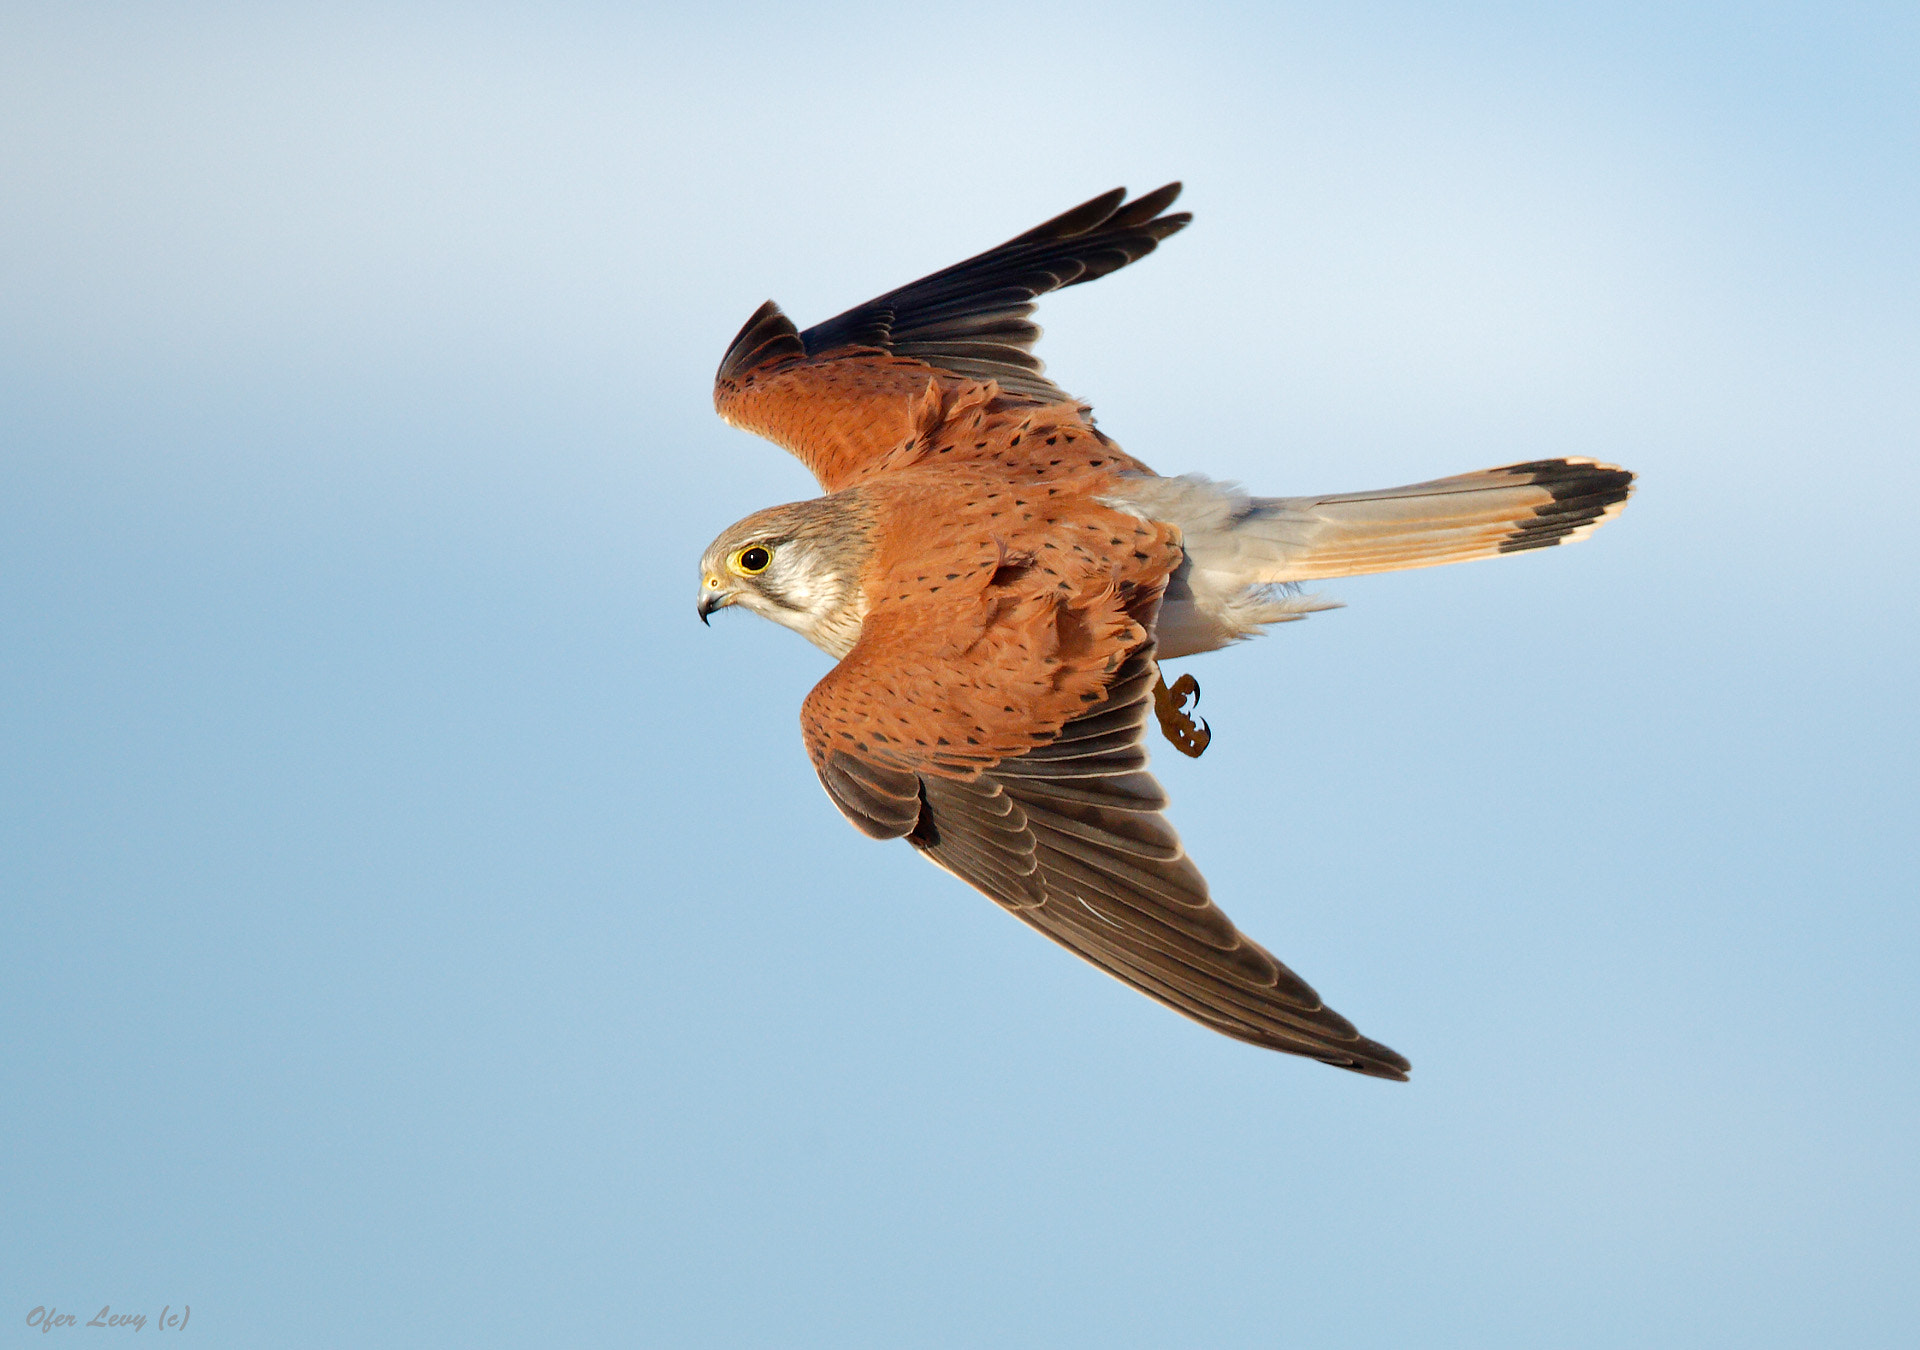 Photograph Nankeen Kestrel banking by Ofer Levy on 500px